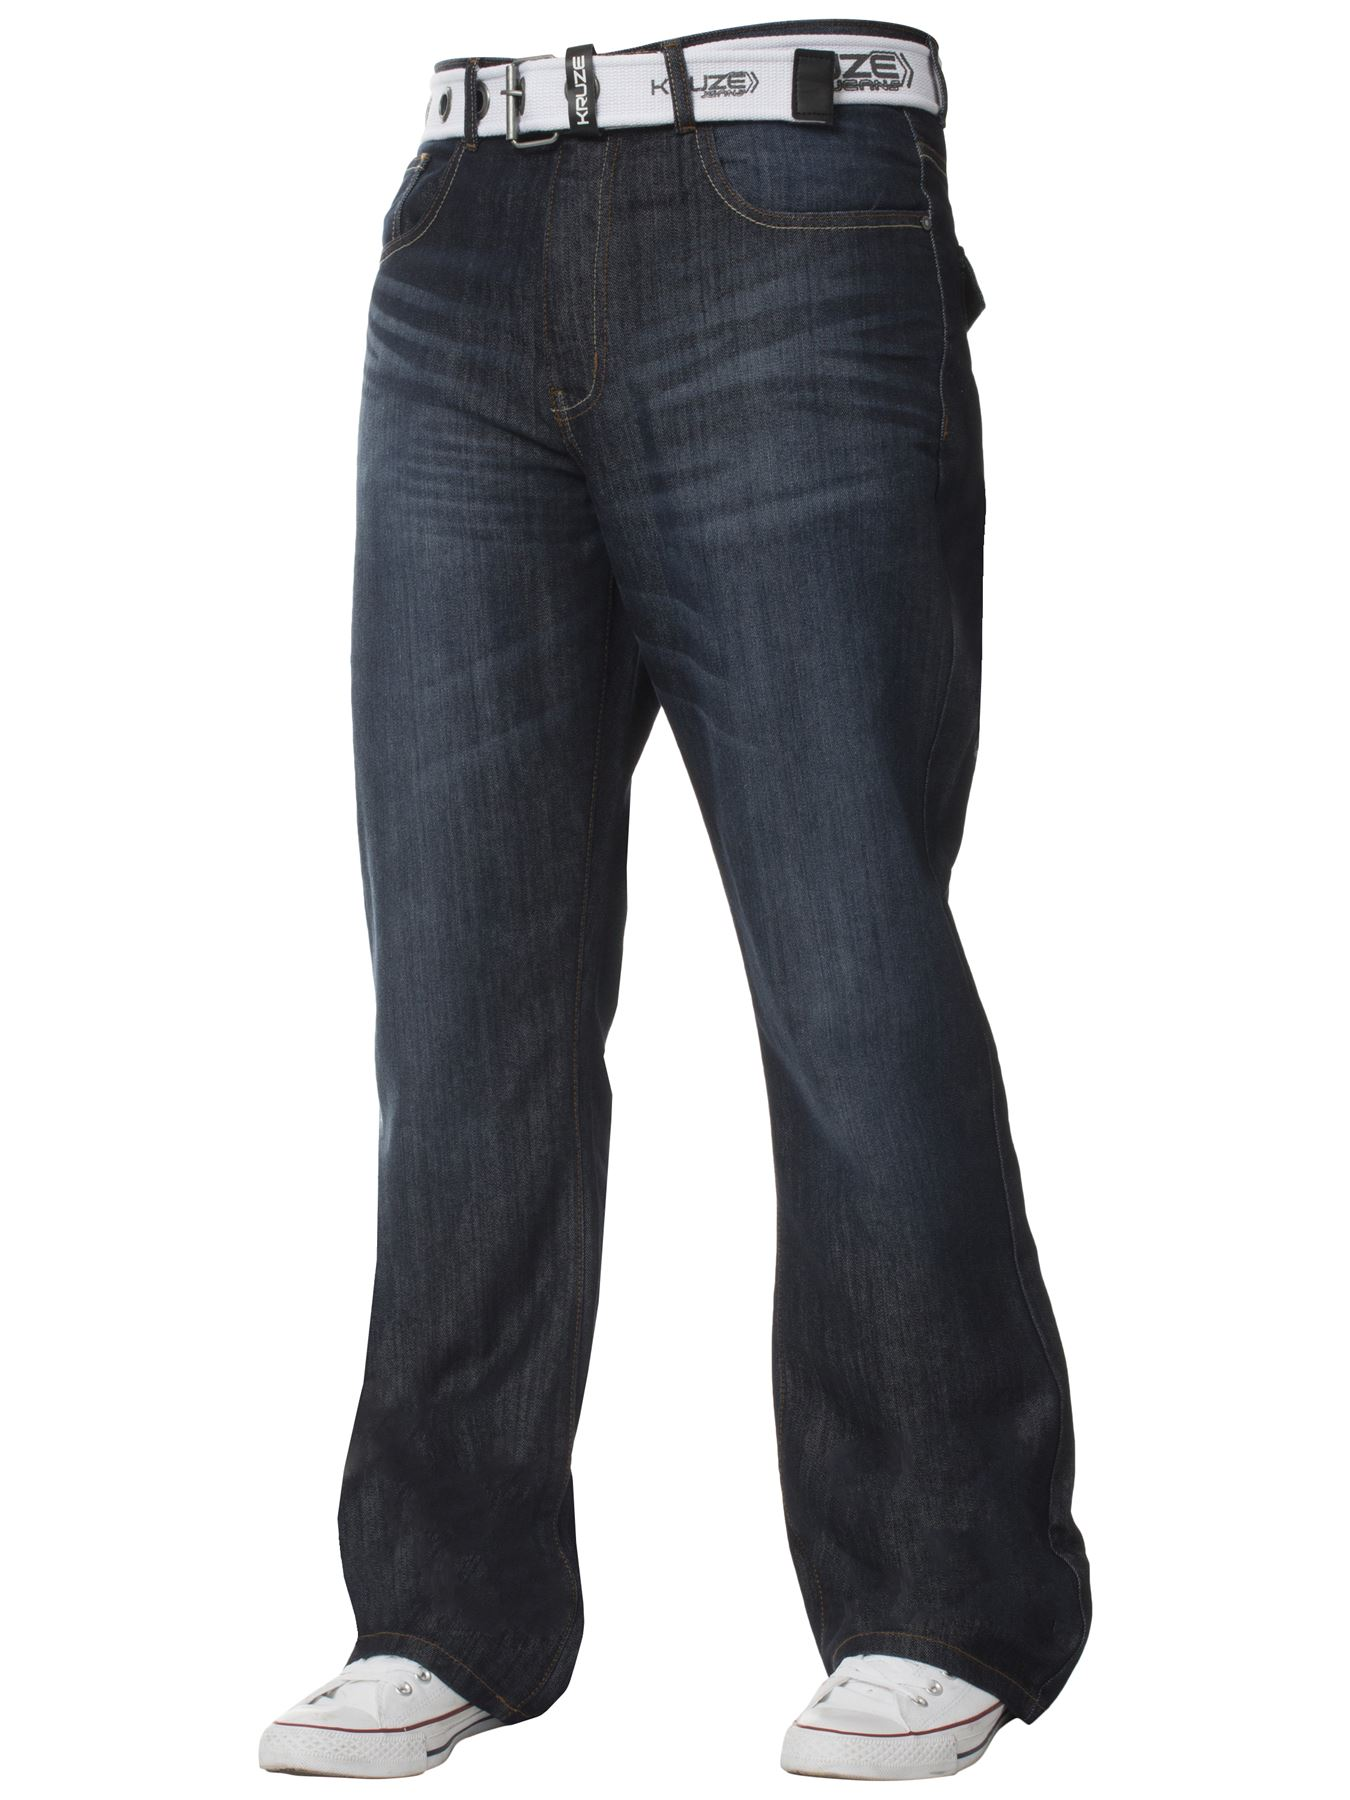 Kruze-Mens-Bootcut-Jeans-Flared-Wide-Leg-Denim-Pants-Big-Tall-King-All-Waists thumbnail 15